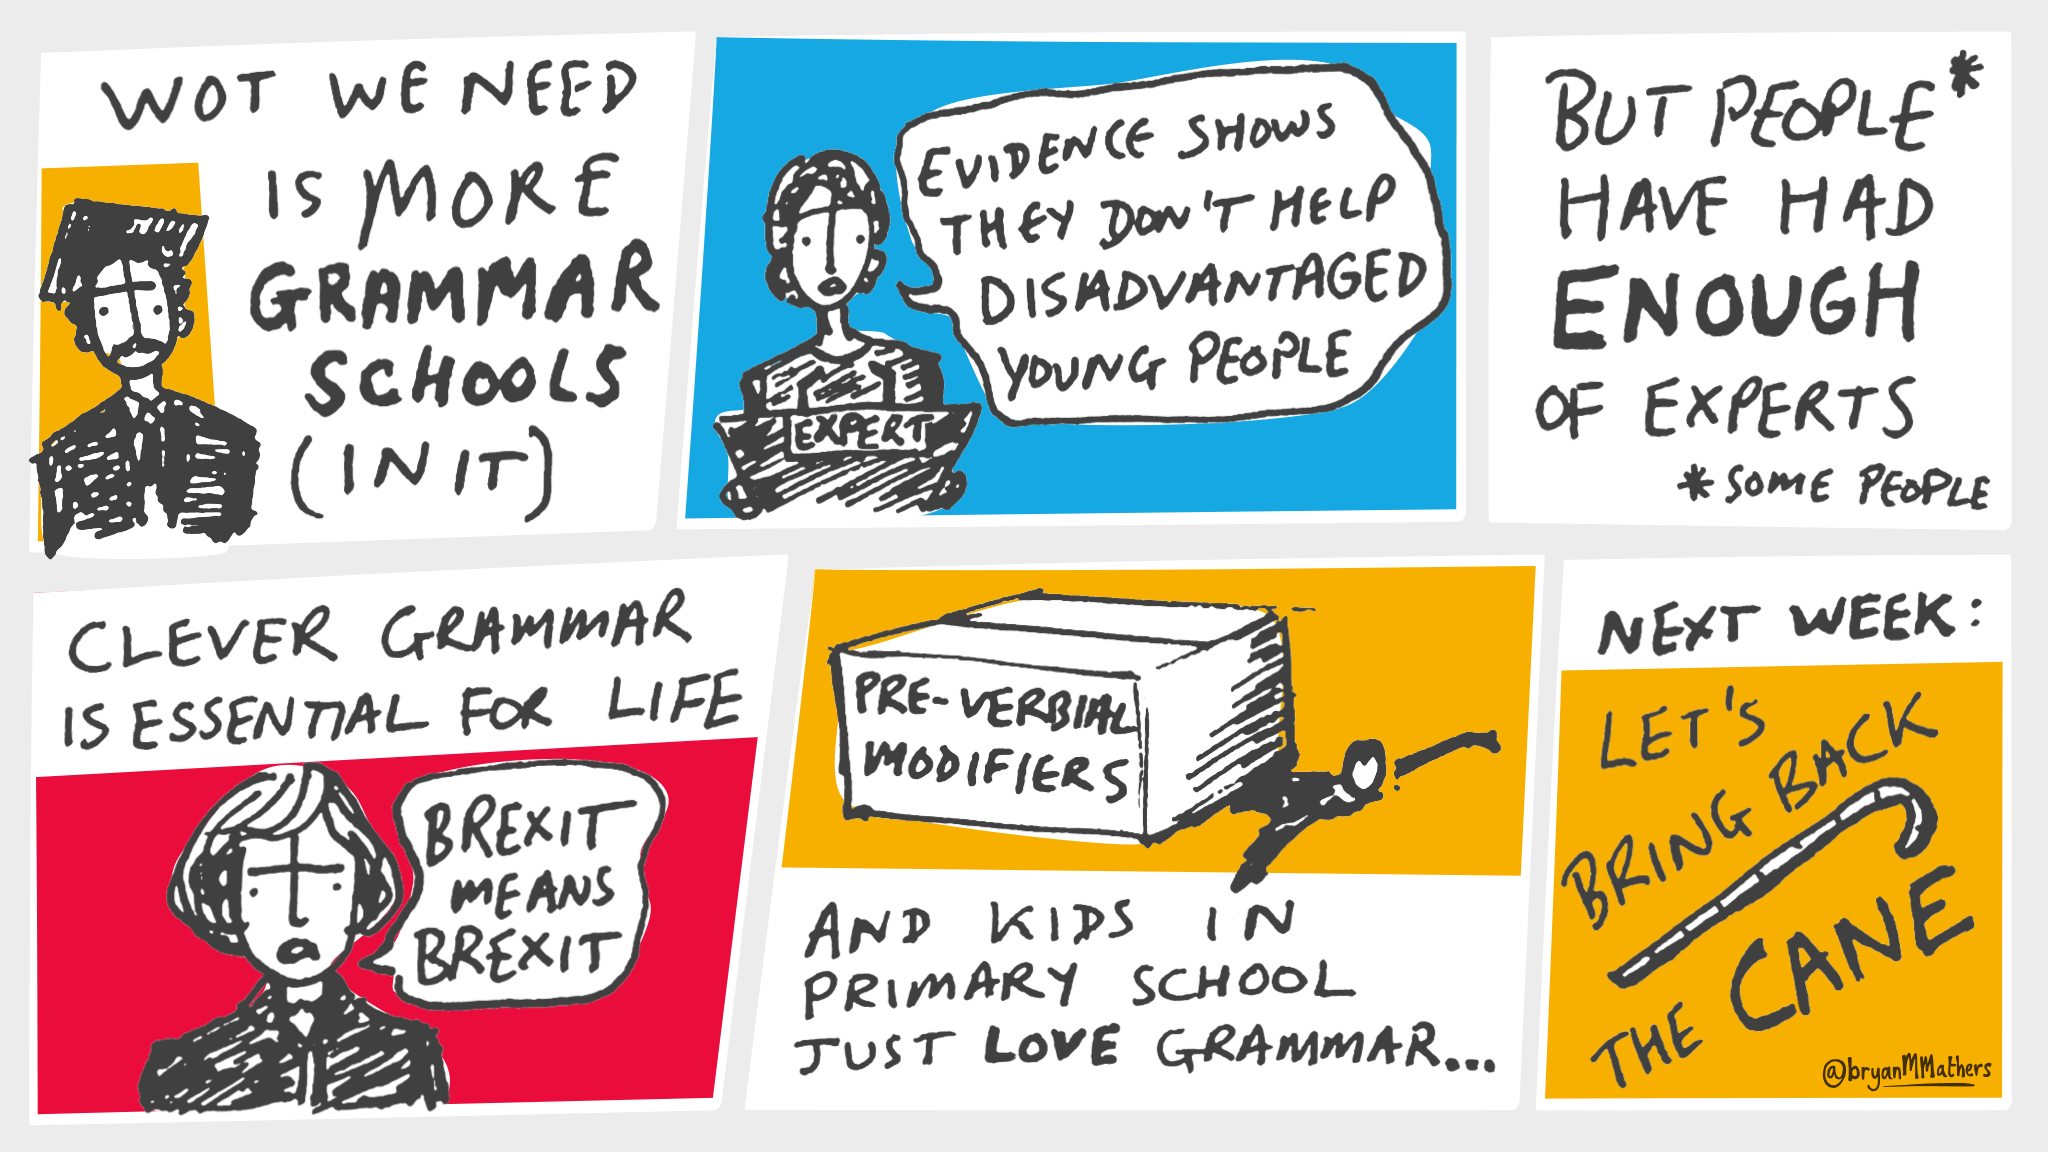 Wot we need is more grammar schools